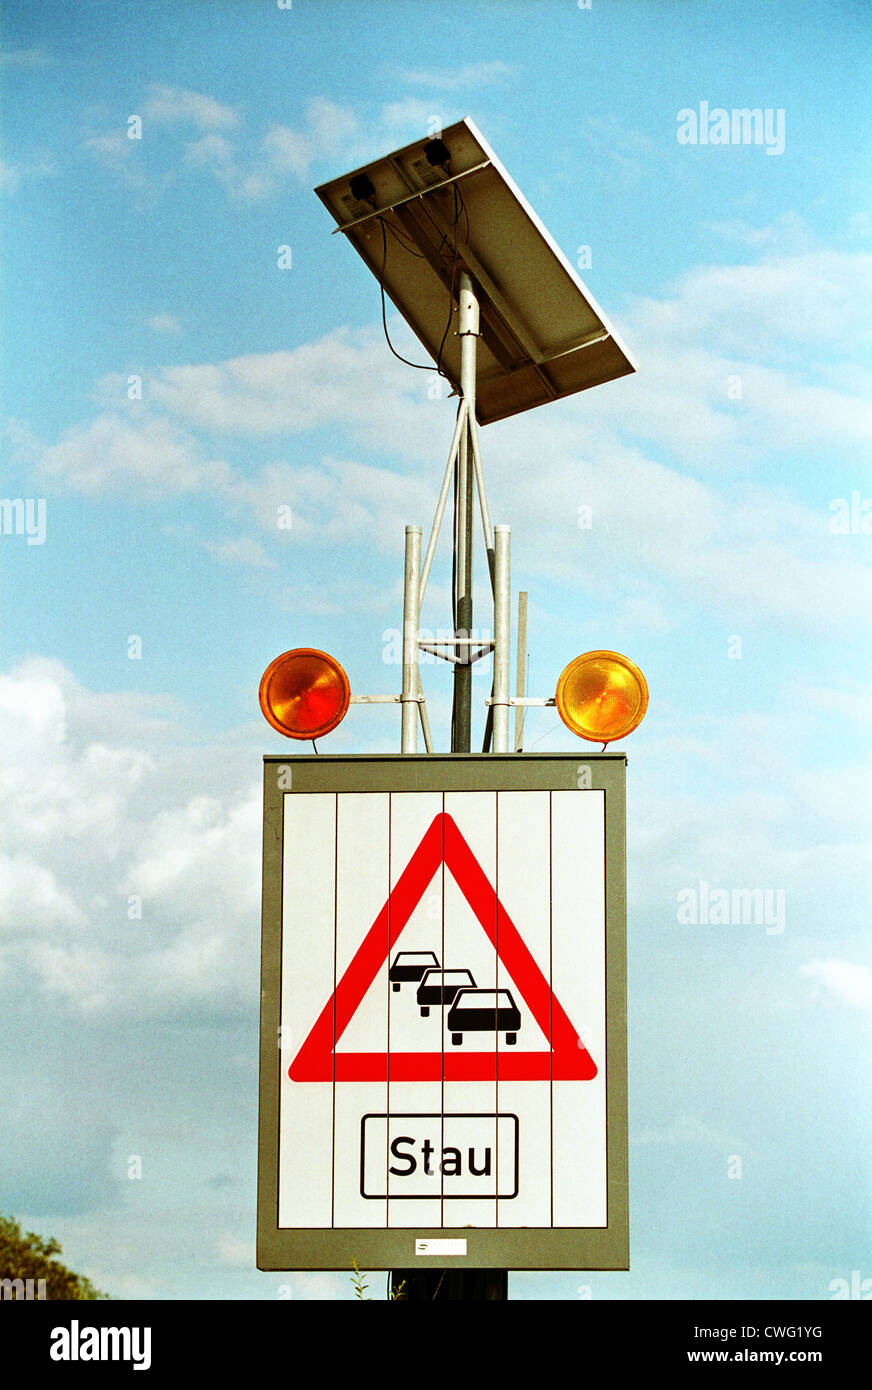 Queue Warning (character 124 to the Highway Code) on a motorway - Stock Image